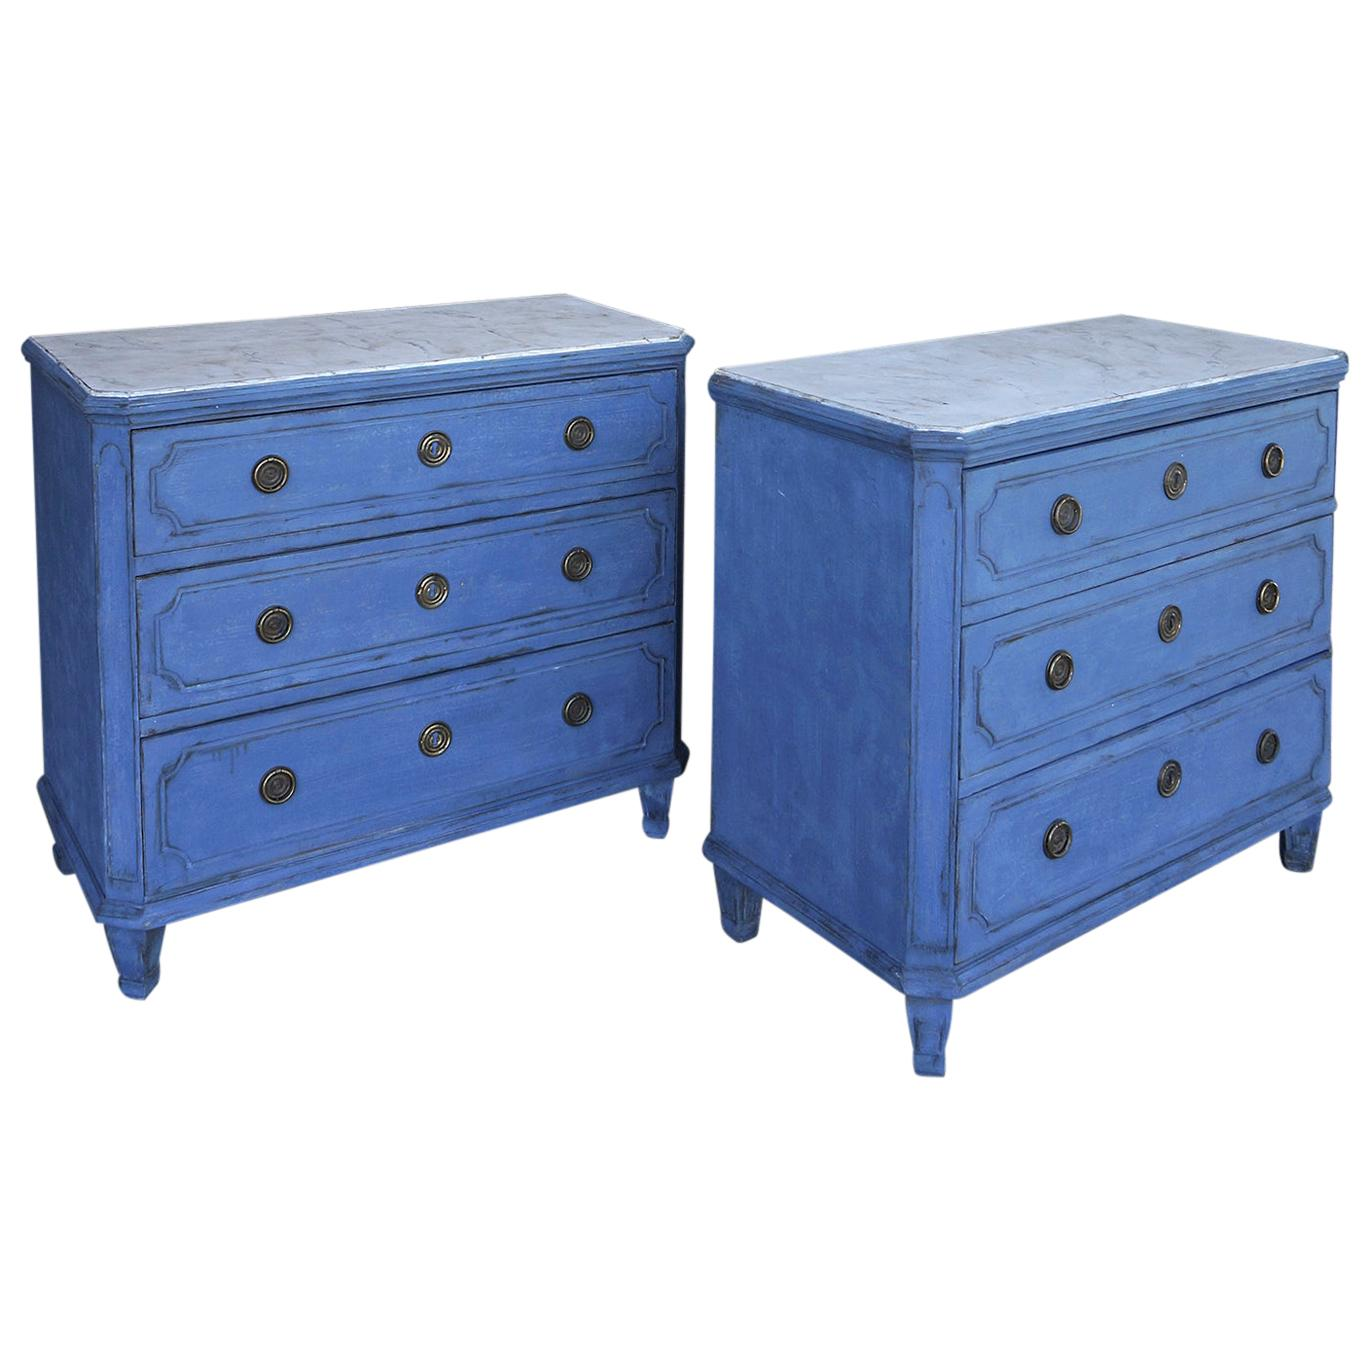 Pair of Swedish Neoclassical Chests in Blue Paint